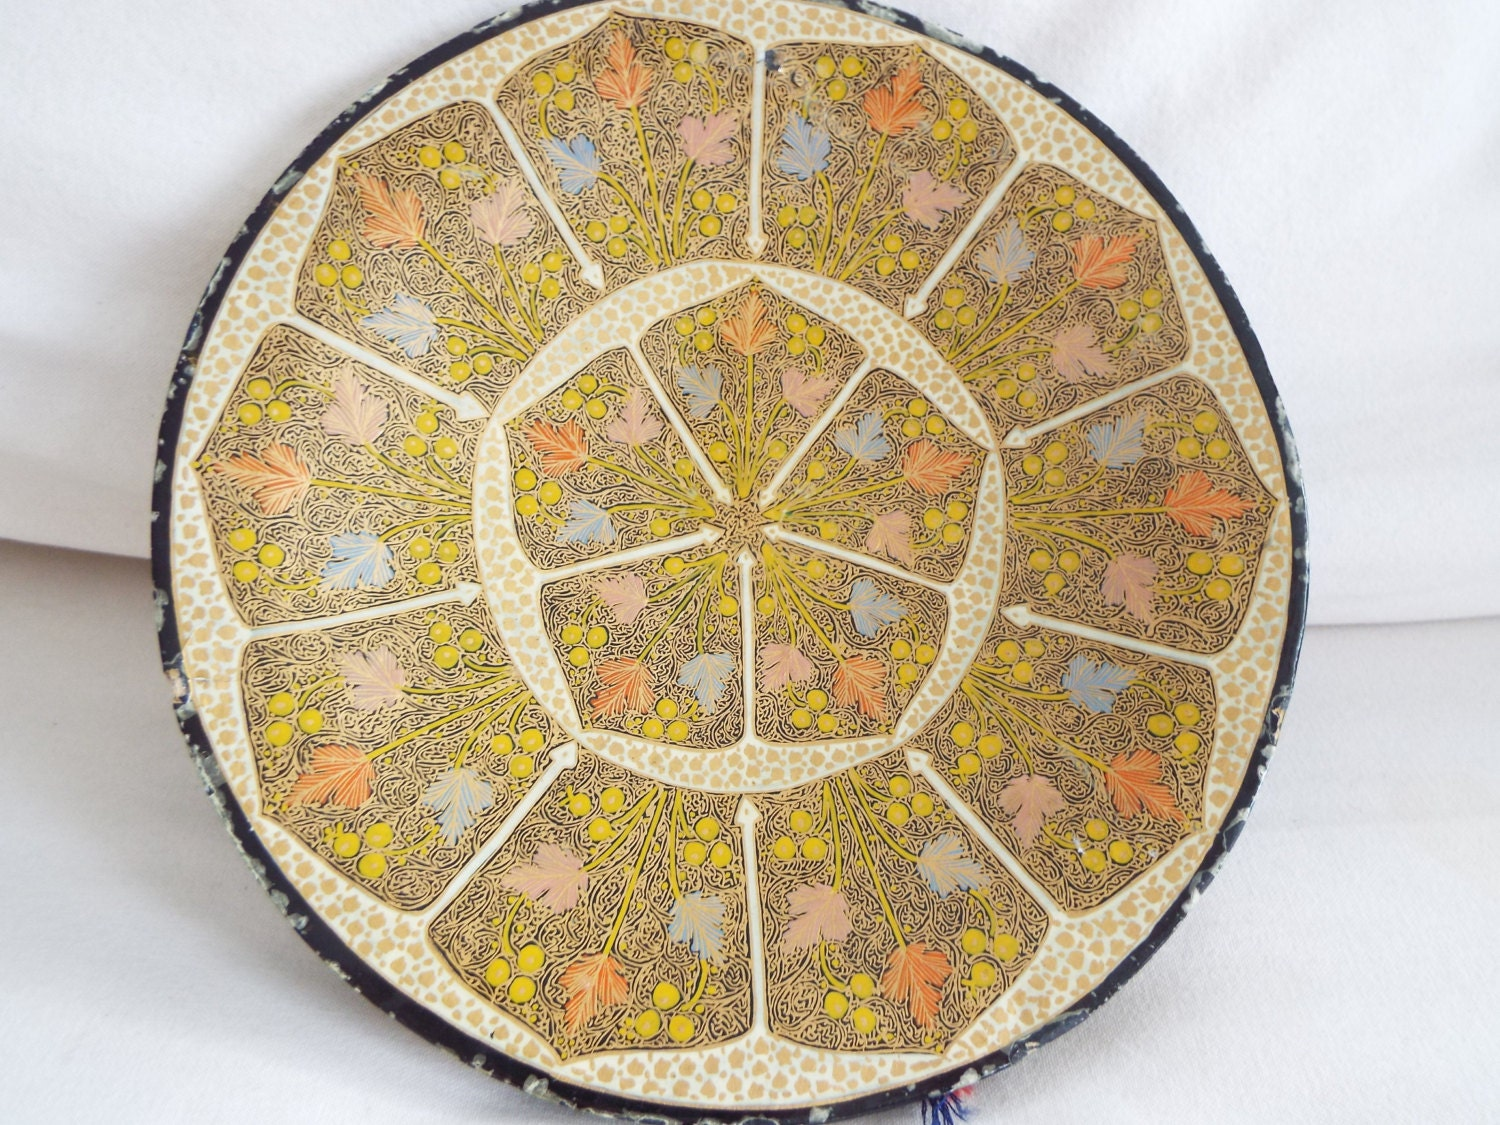 Papermache Kashmir lacquered hanging wall plate charger